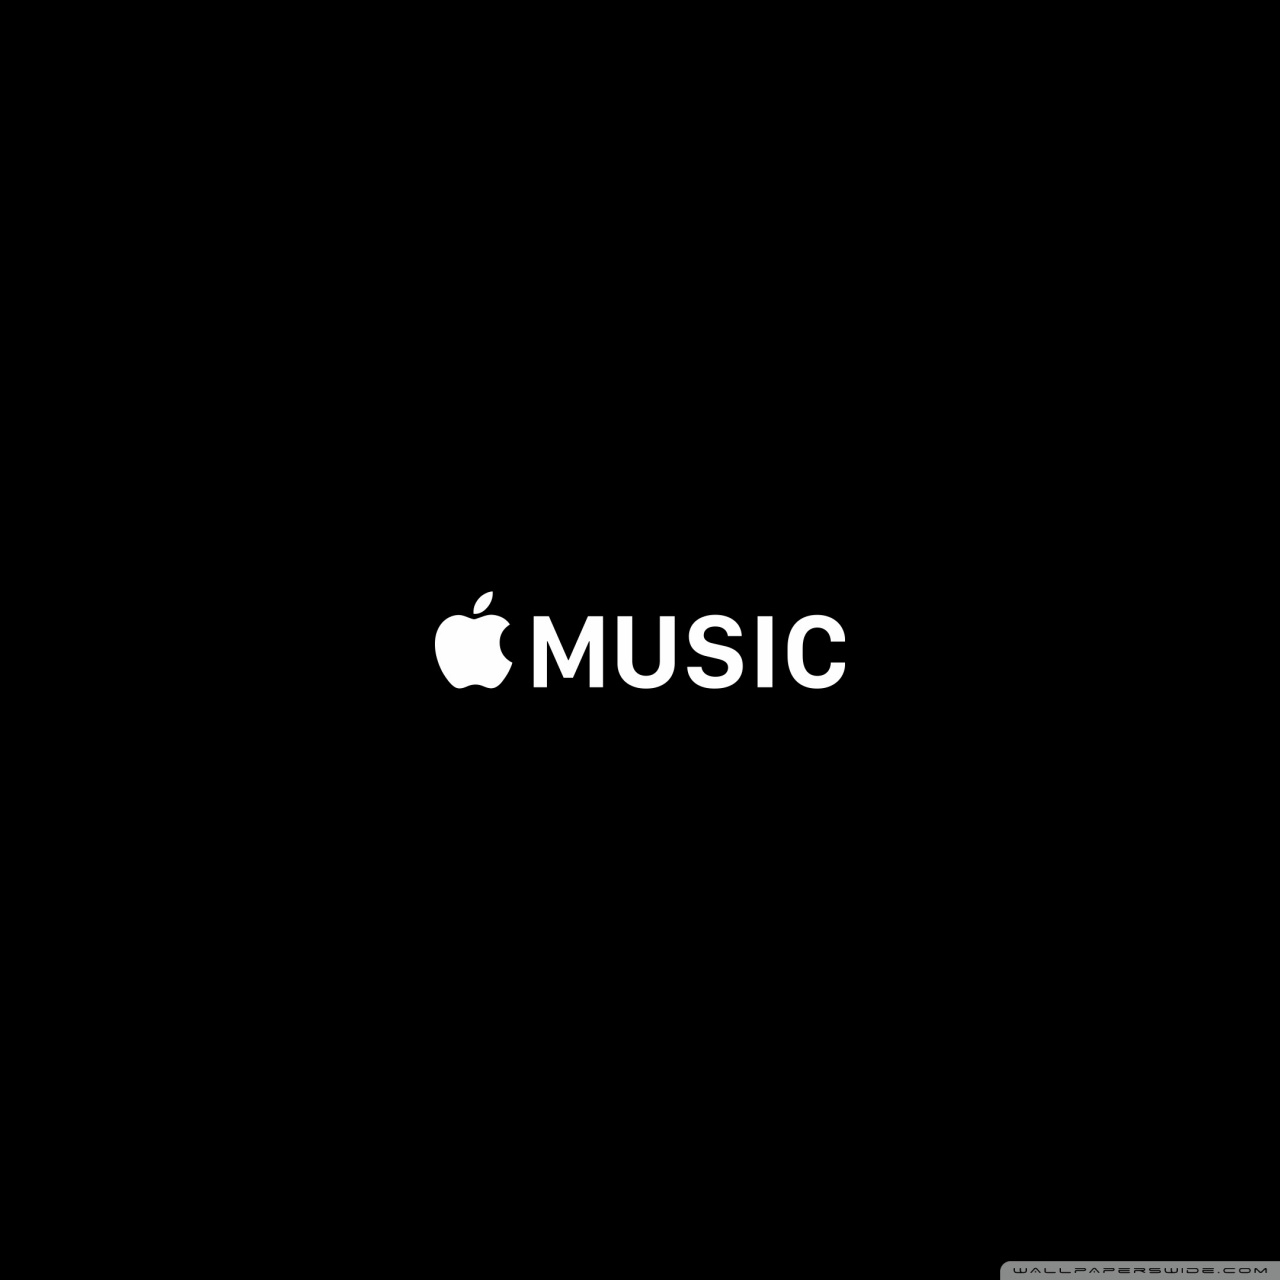 apple music wallpapers